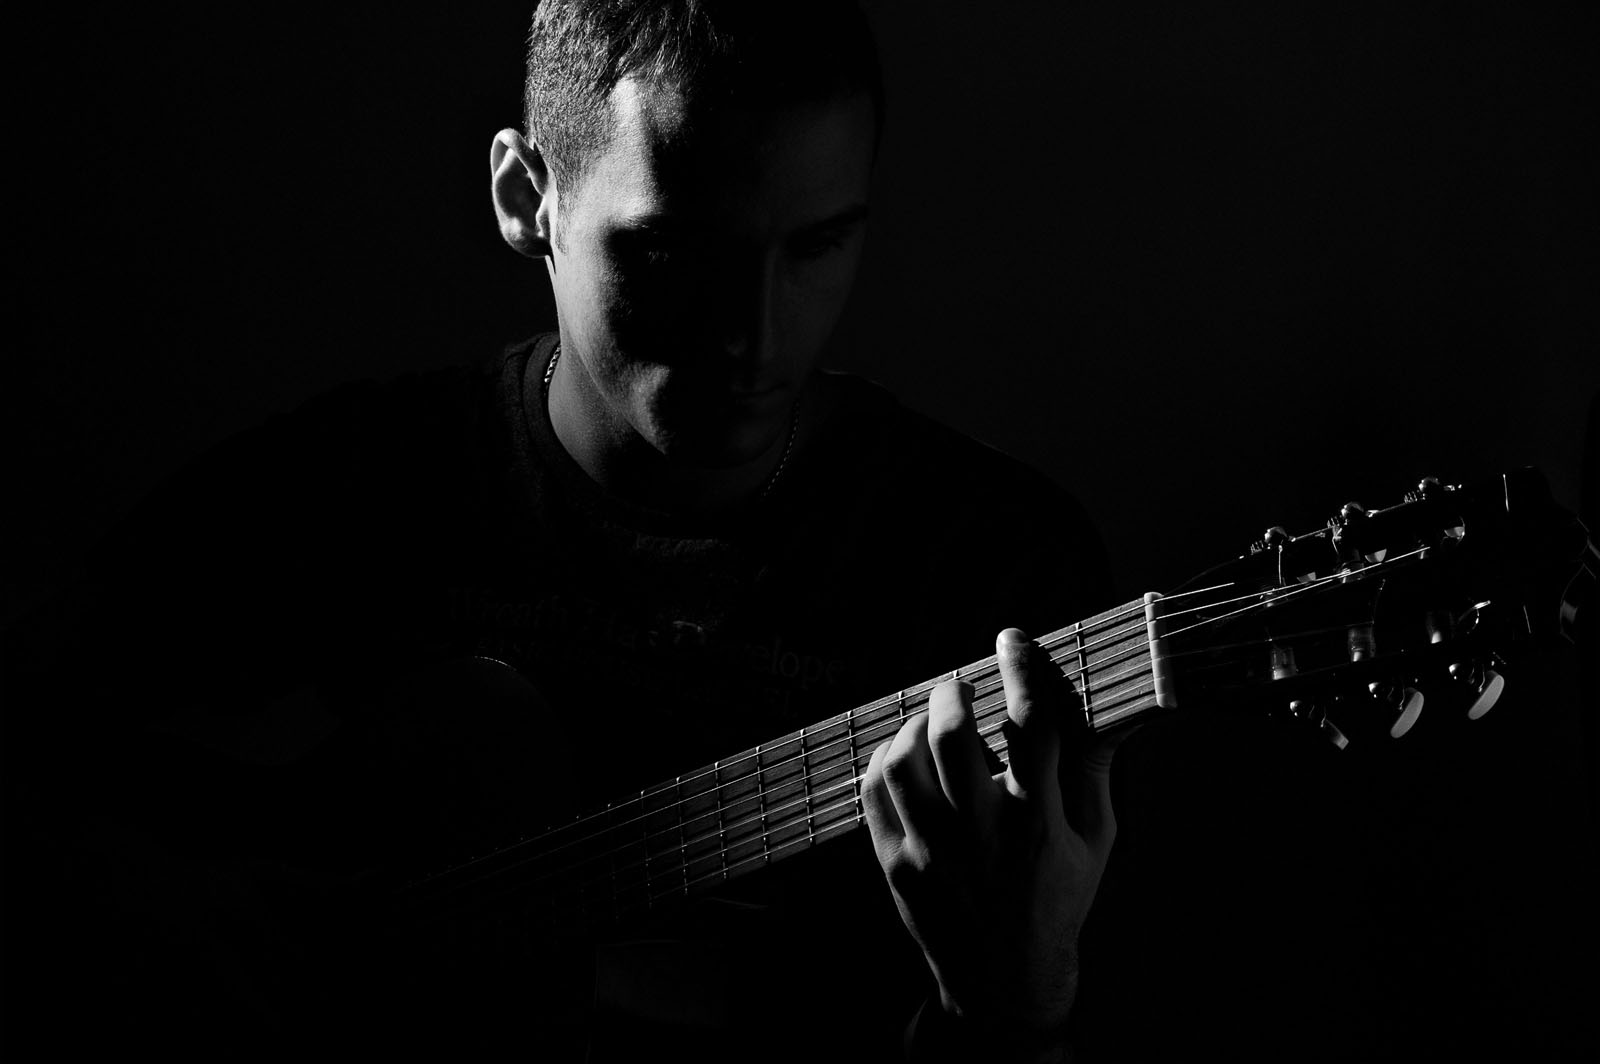 black a white guitar player